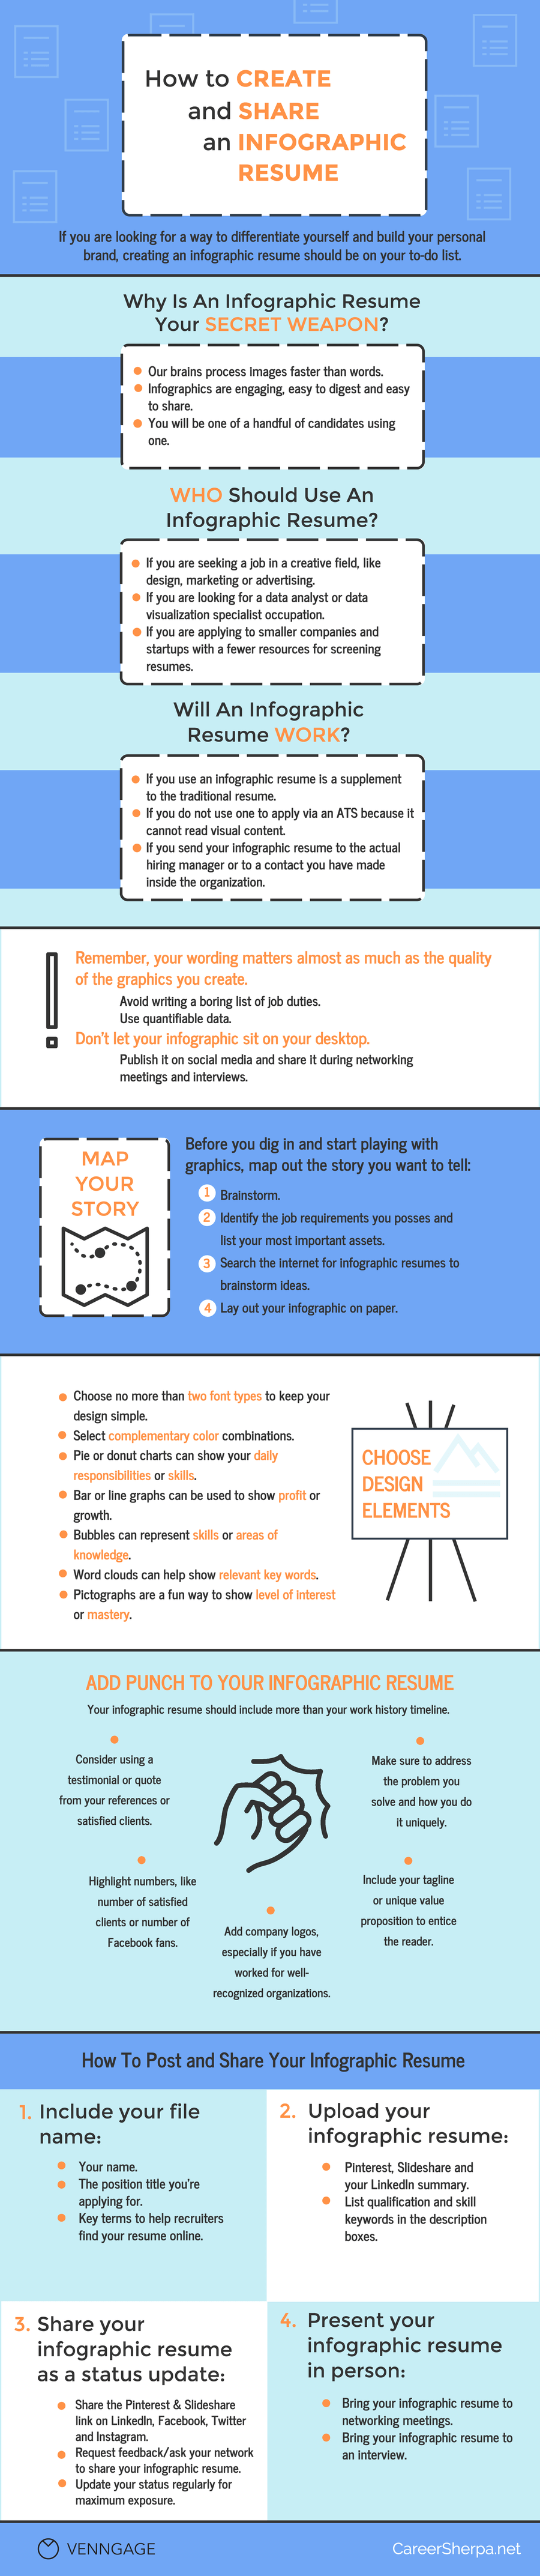 Guidelines For A Resume Cool The Right Way To Use Your Infographic Resume  Infographic Resume